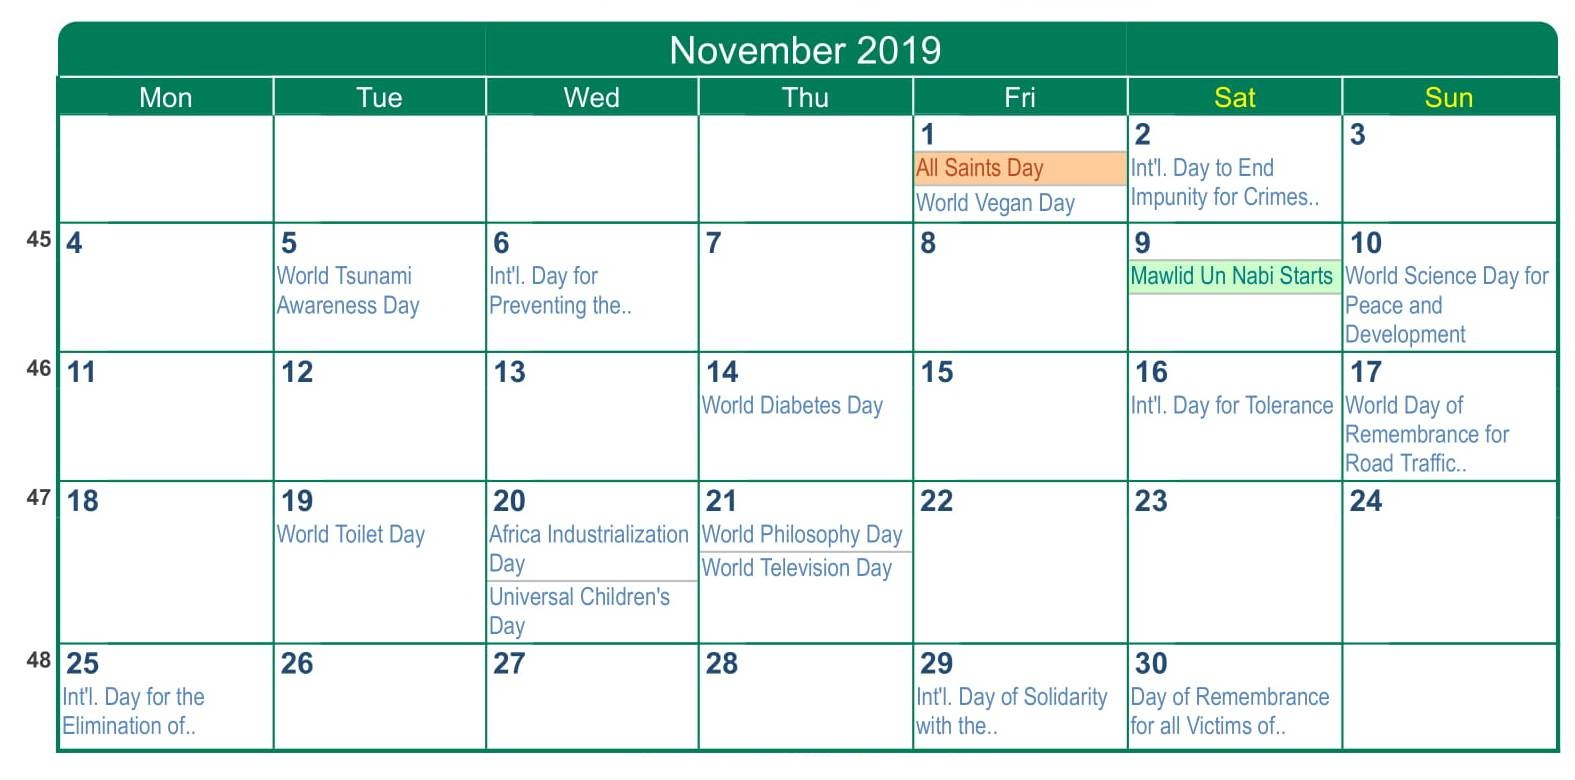 November 2019 Calendar With Holidays South Africa